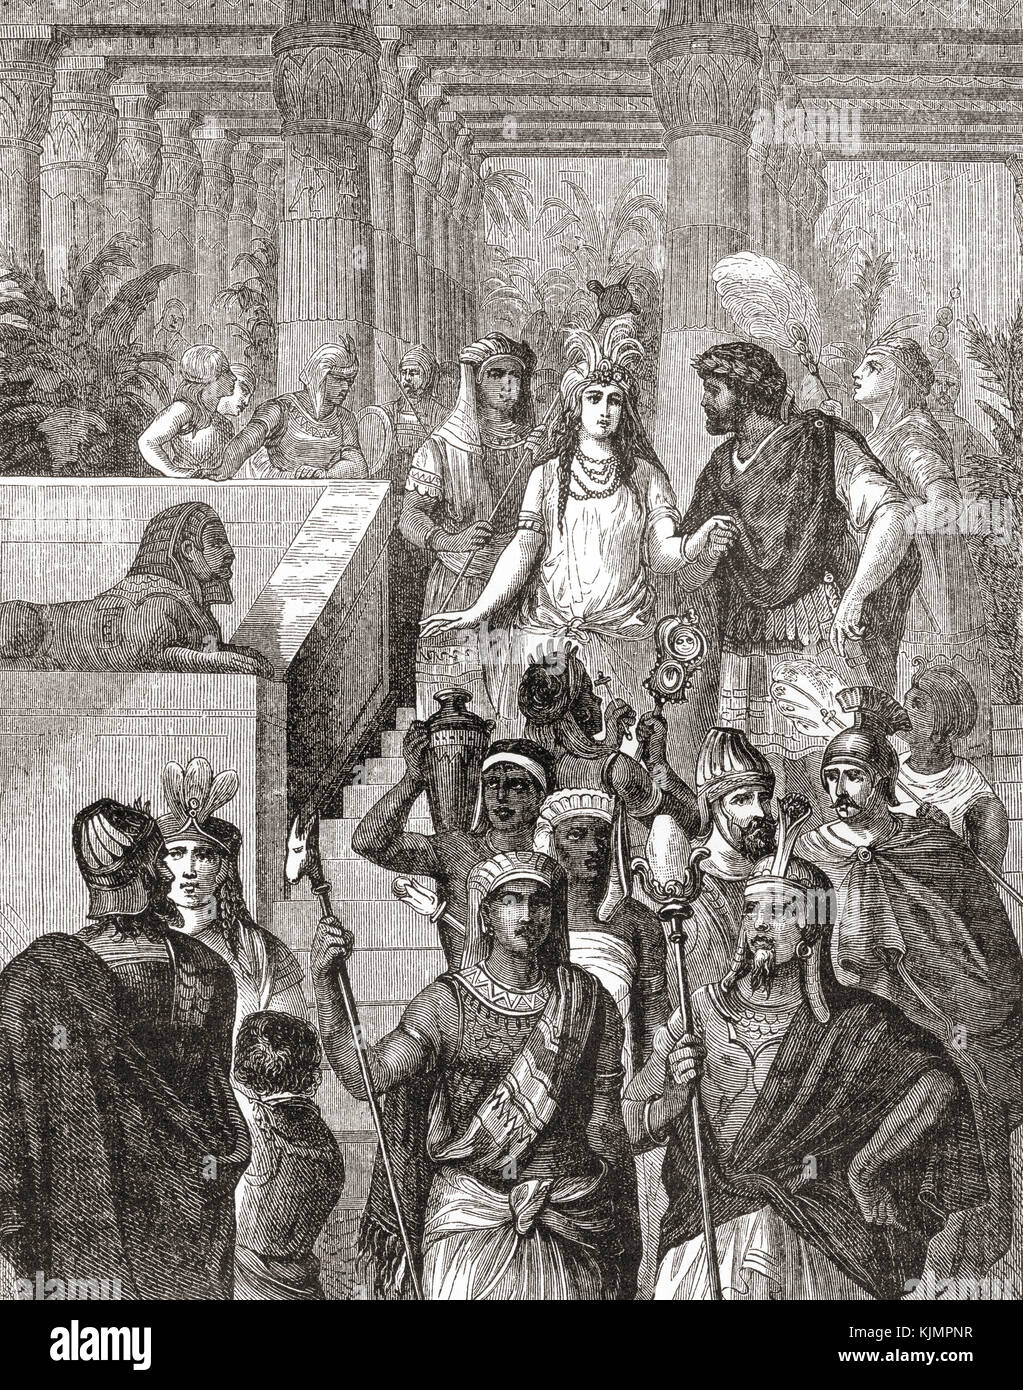 Antony and Cleopatra in Egypt.  Cleopatra VII Philopator, 69 - 30 BC, aka Cleopatra.  Last active ruler of the Ptolemaic - Stock Image